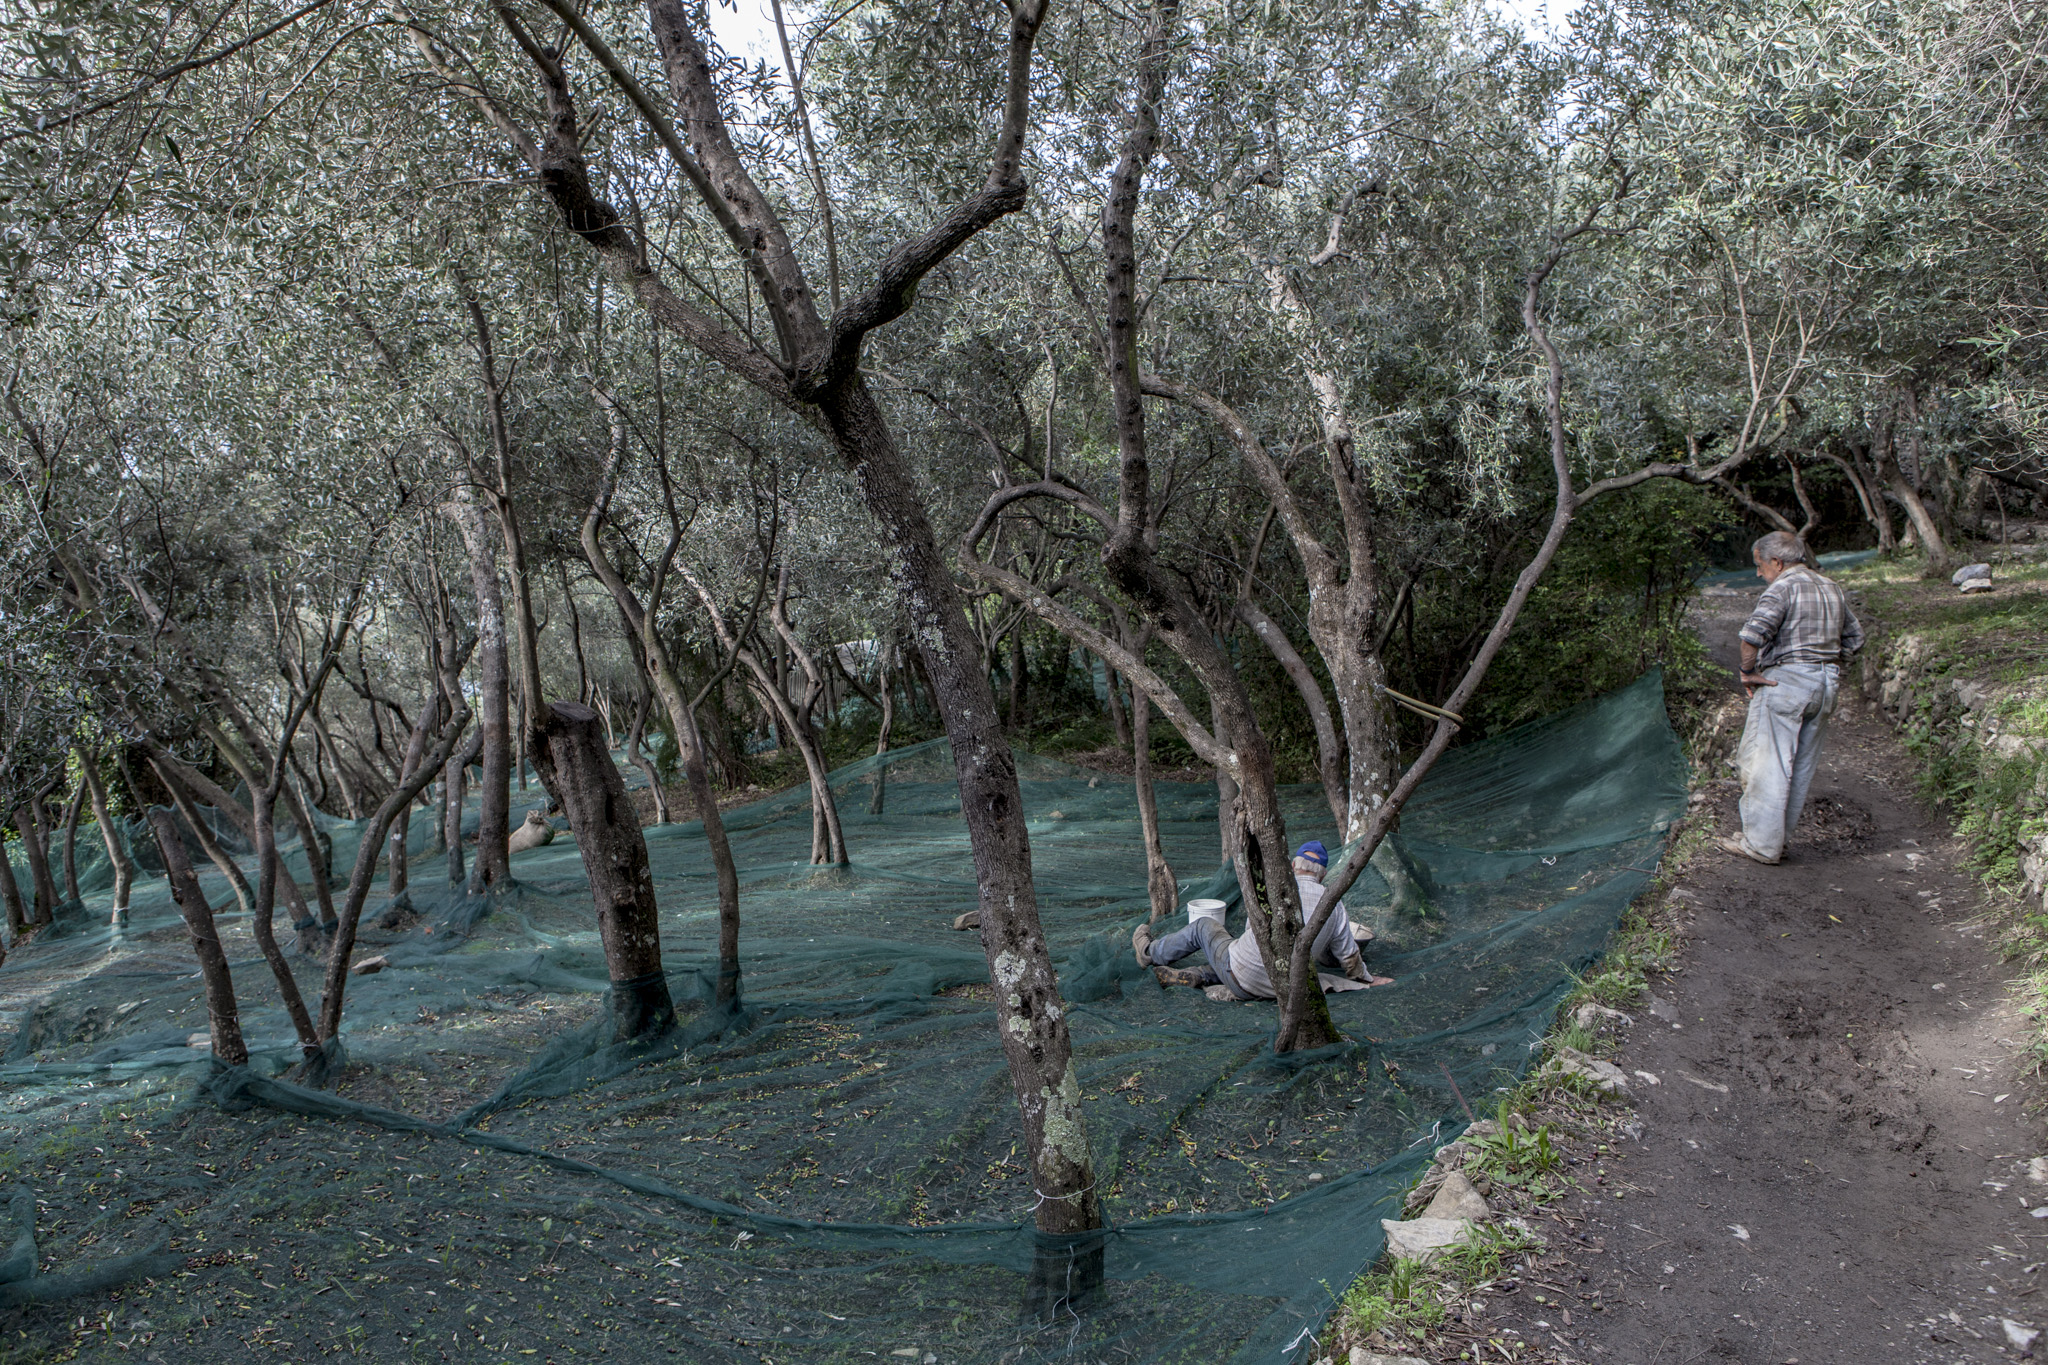 Gruff farmers collecting olives in giant nets.